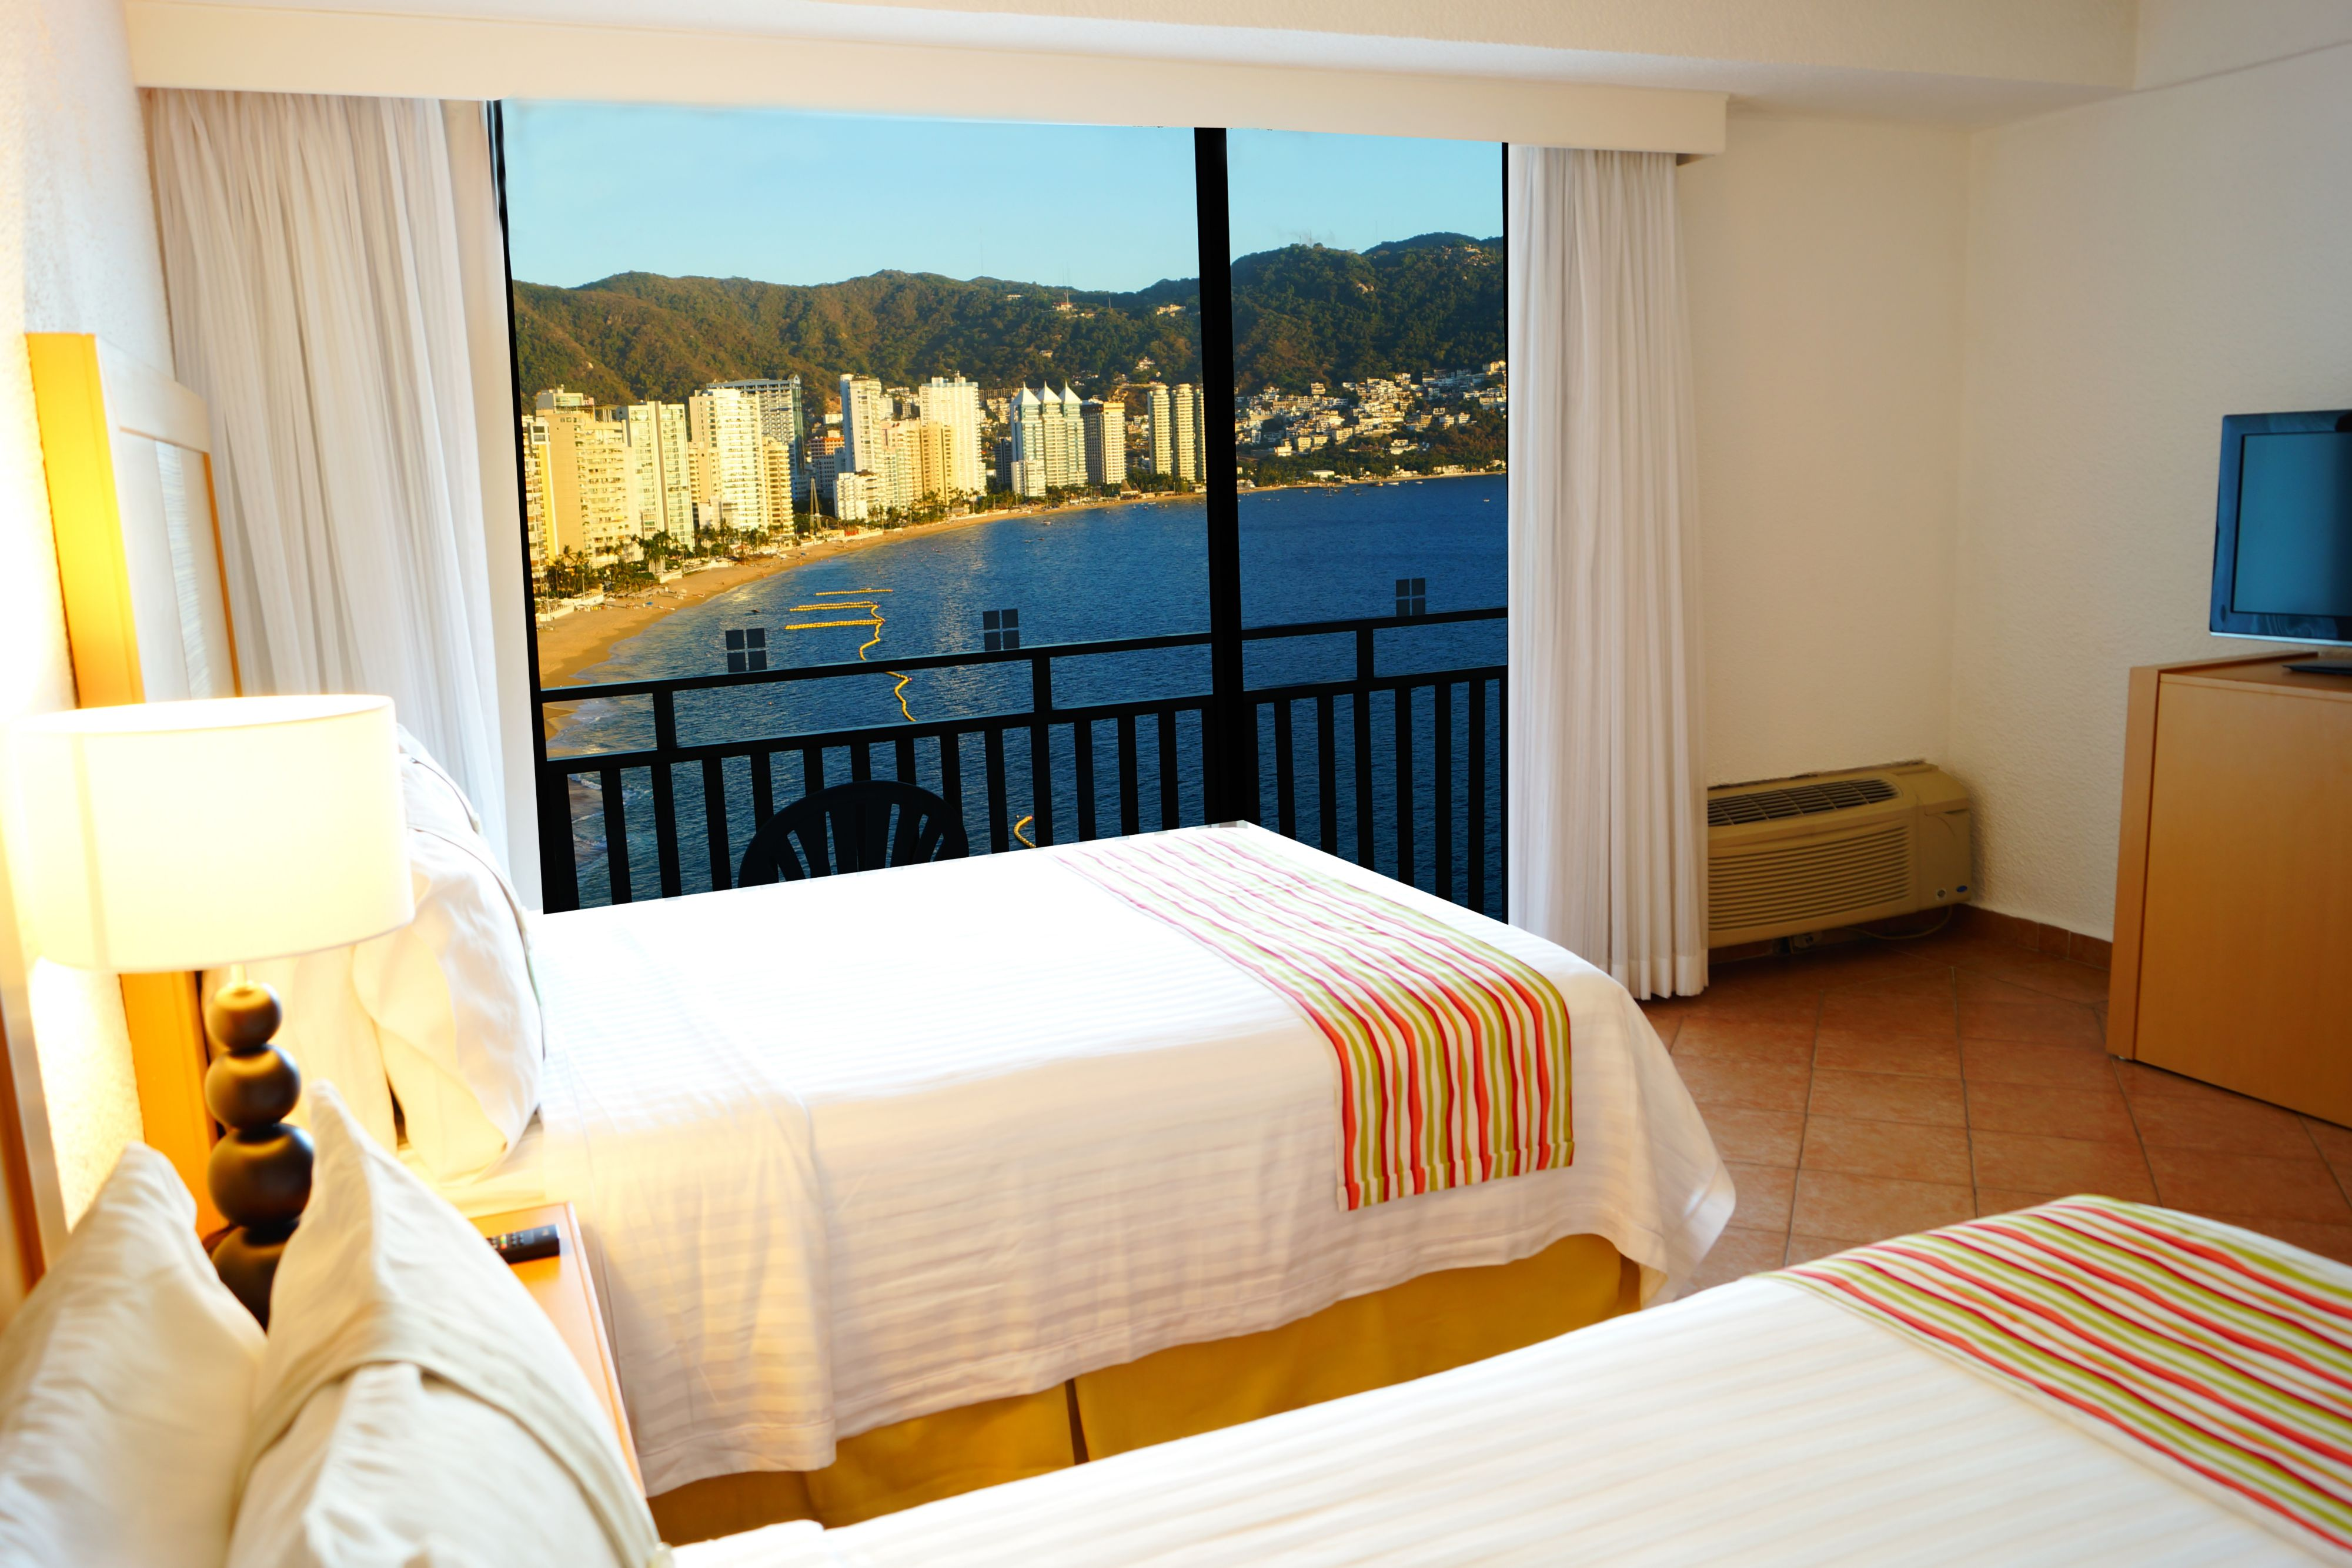 Images Holiday Inn Resort Acapulco